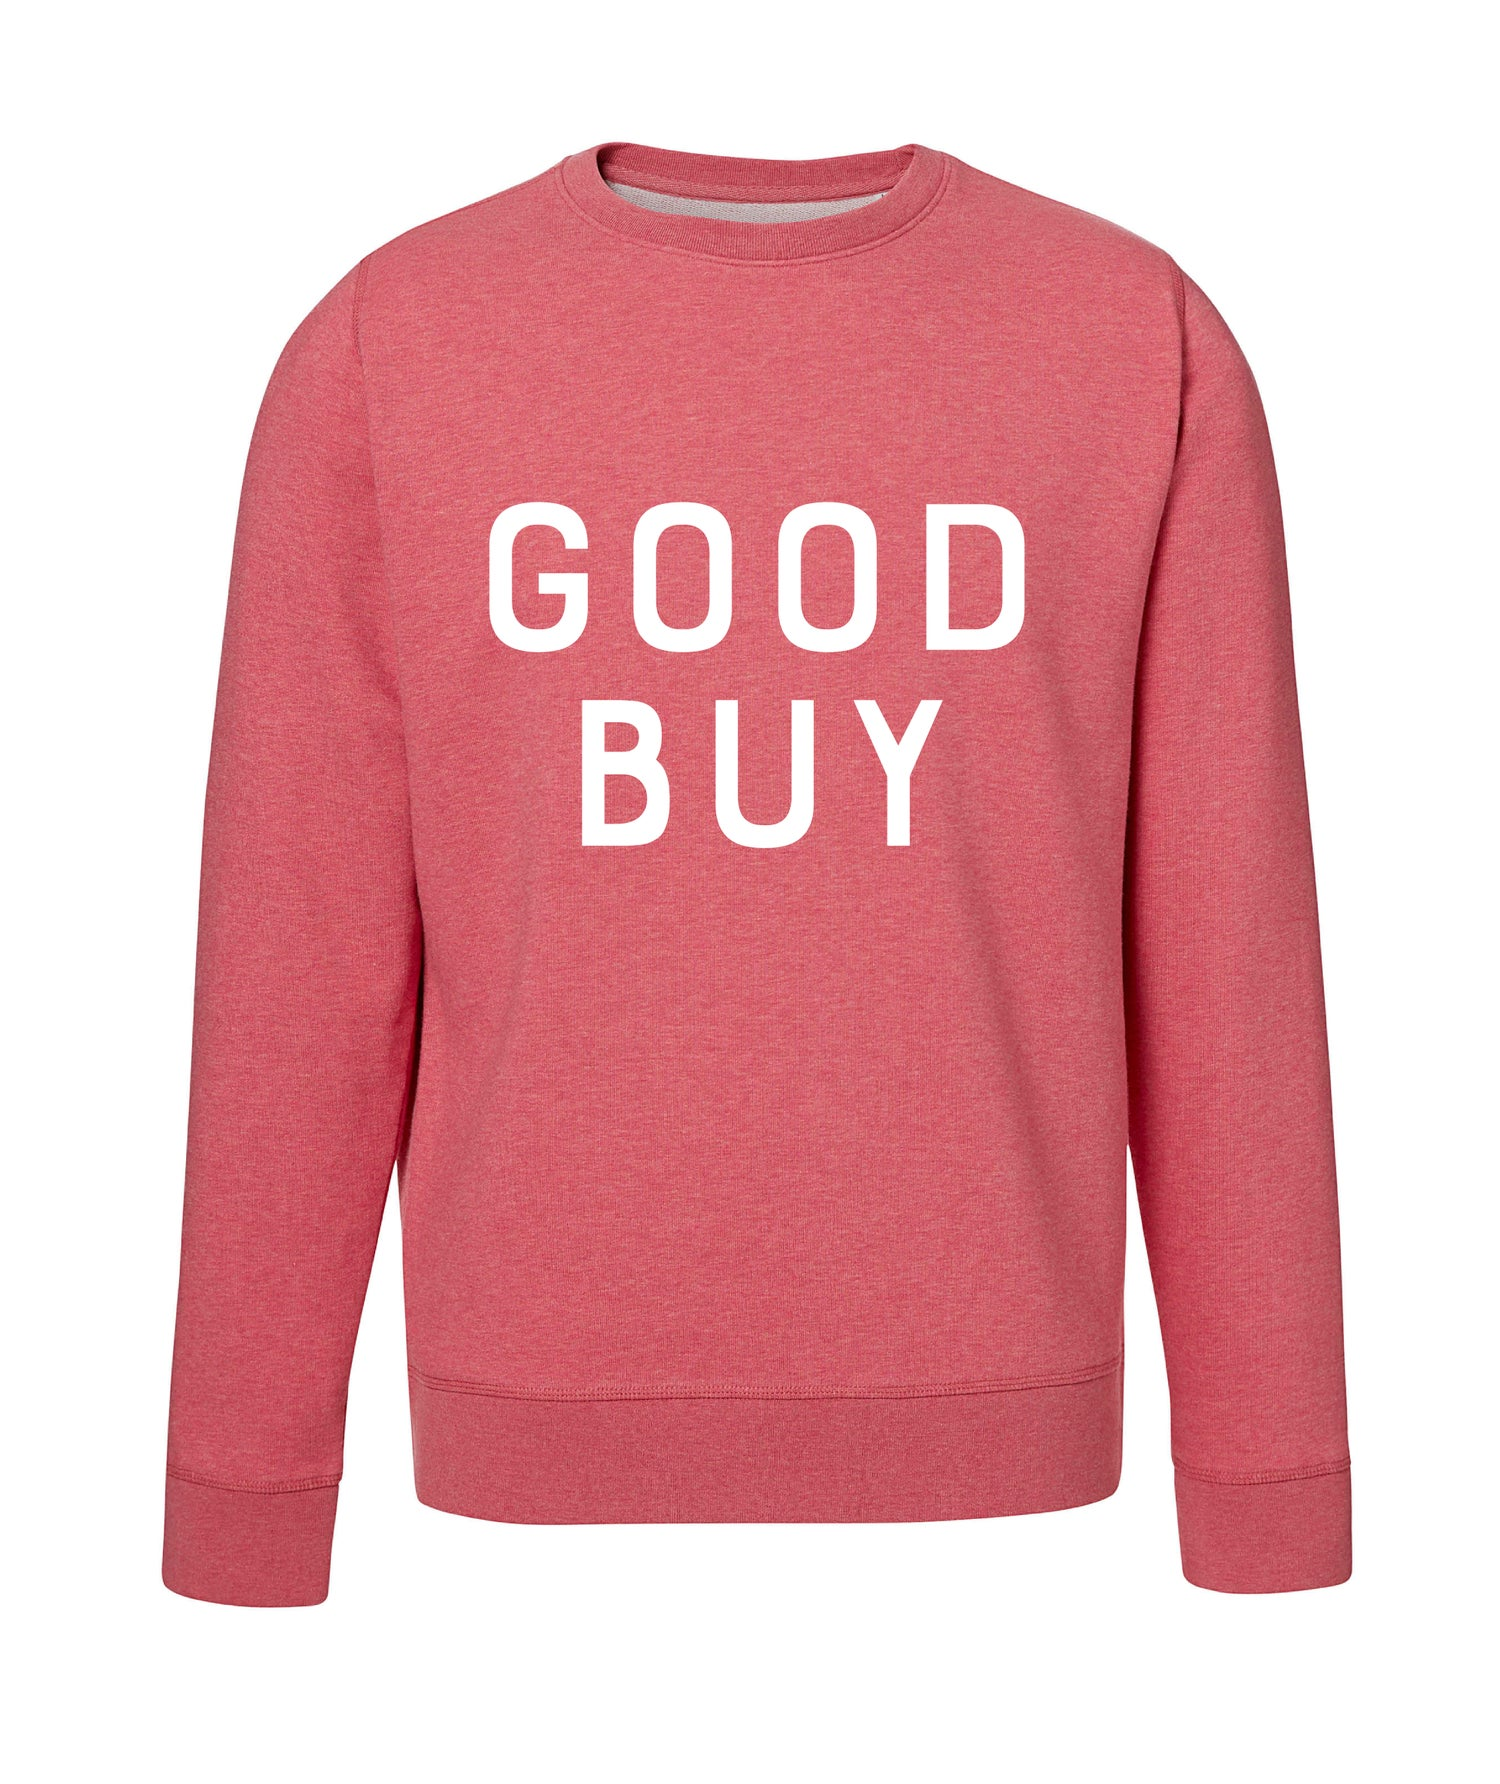 Image of GOOD BUY